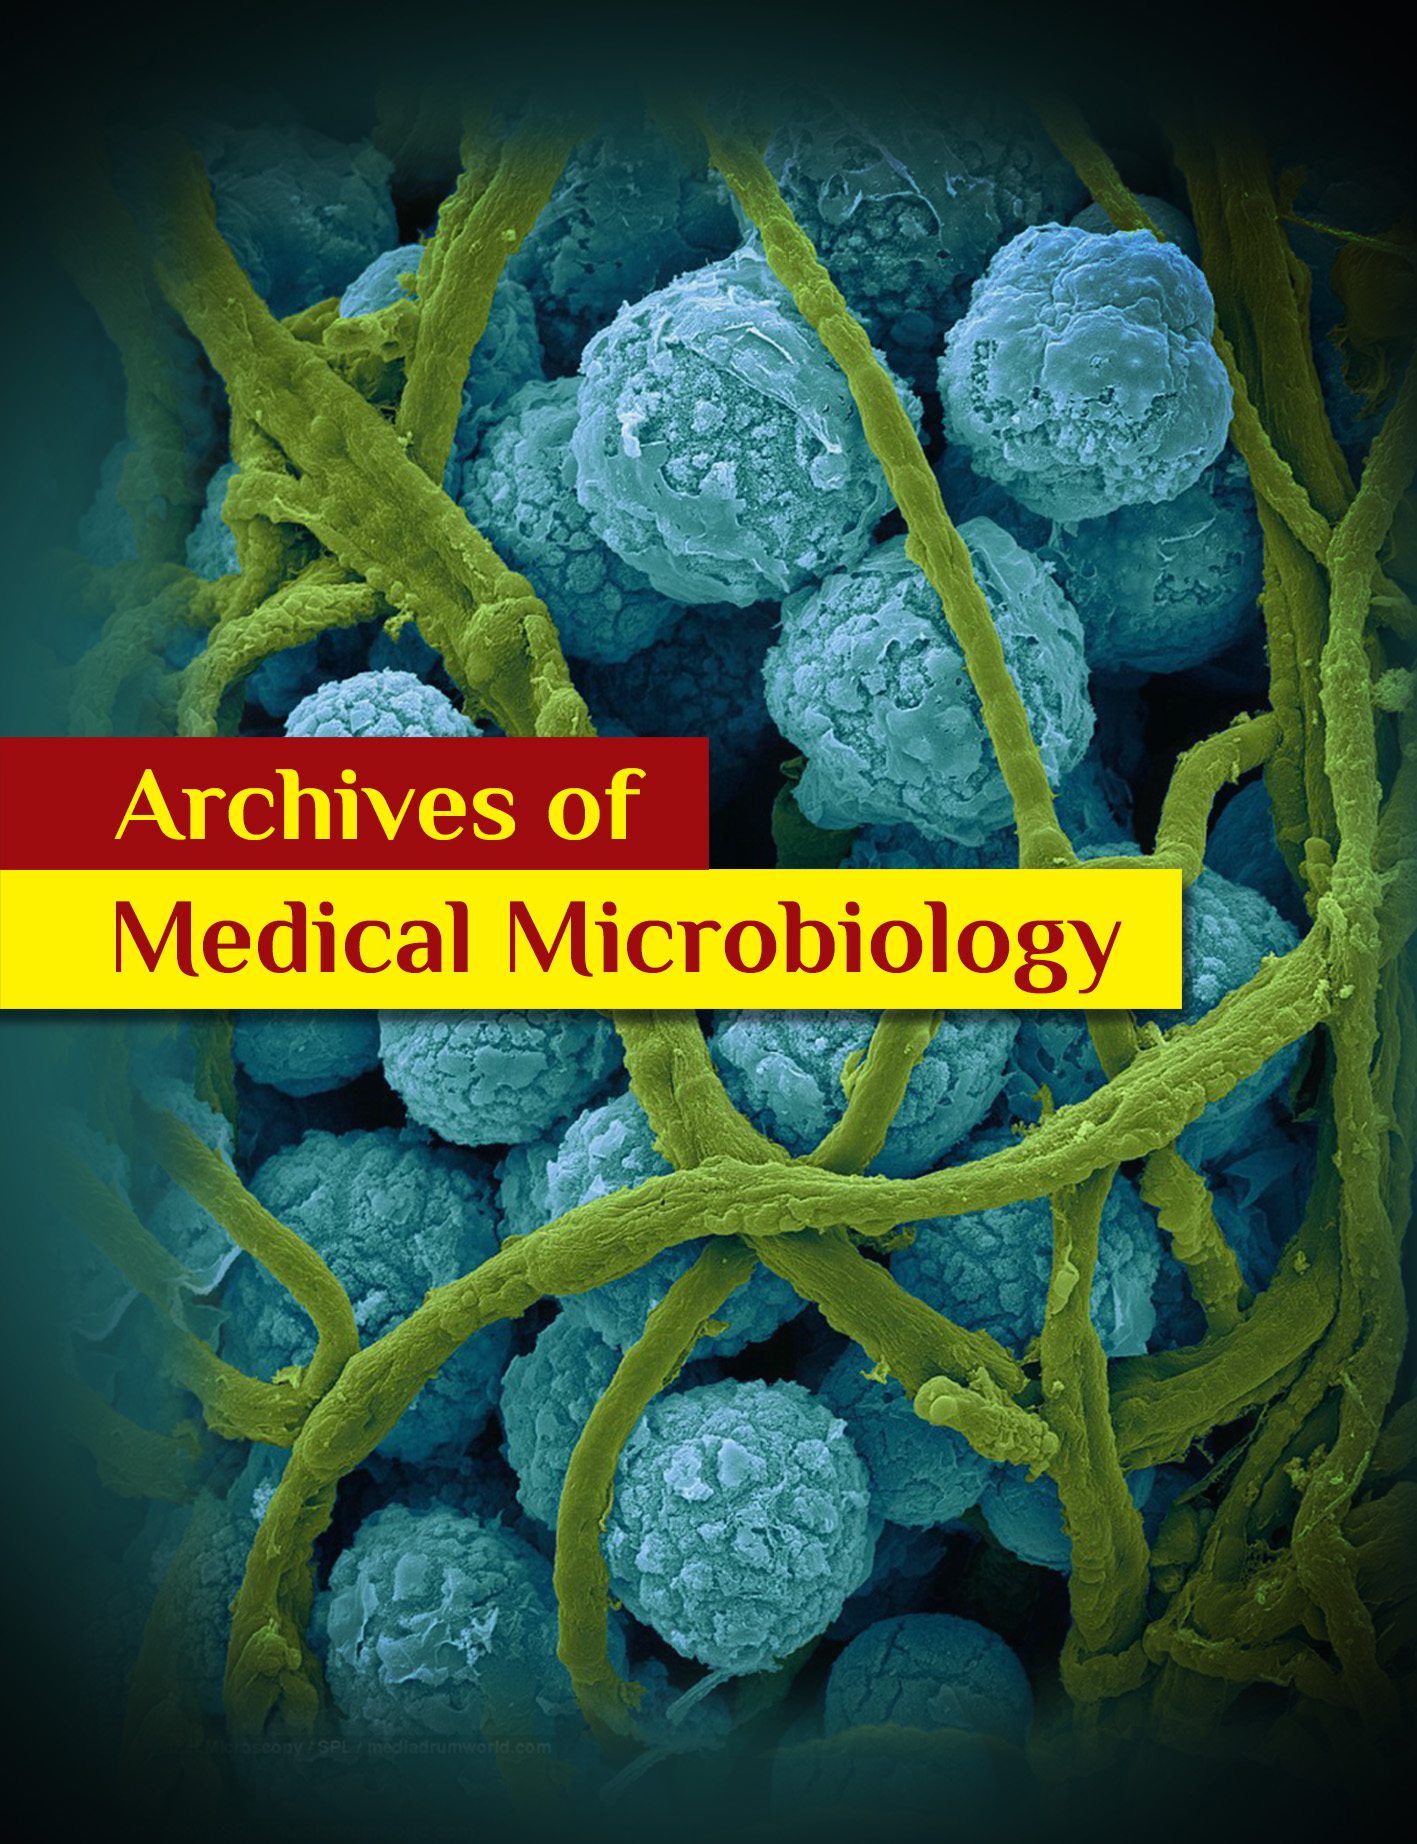 archives_of_medical_microbiology